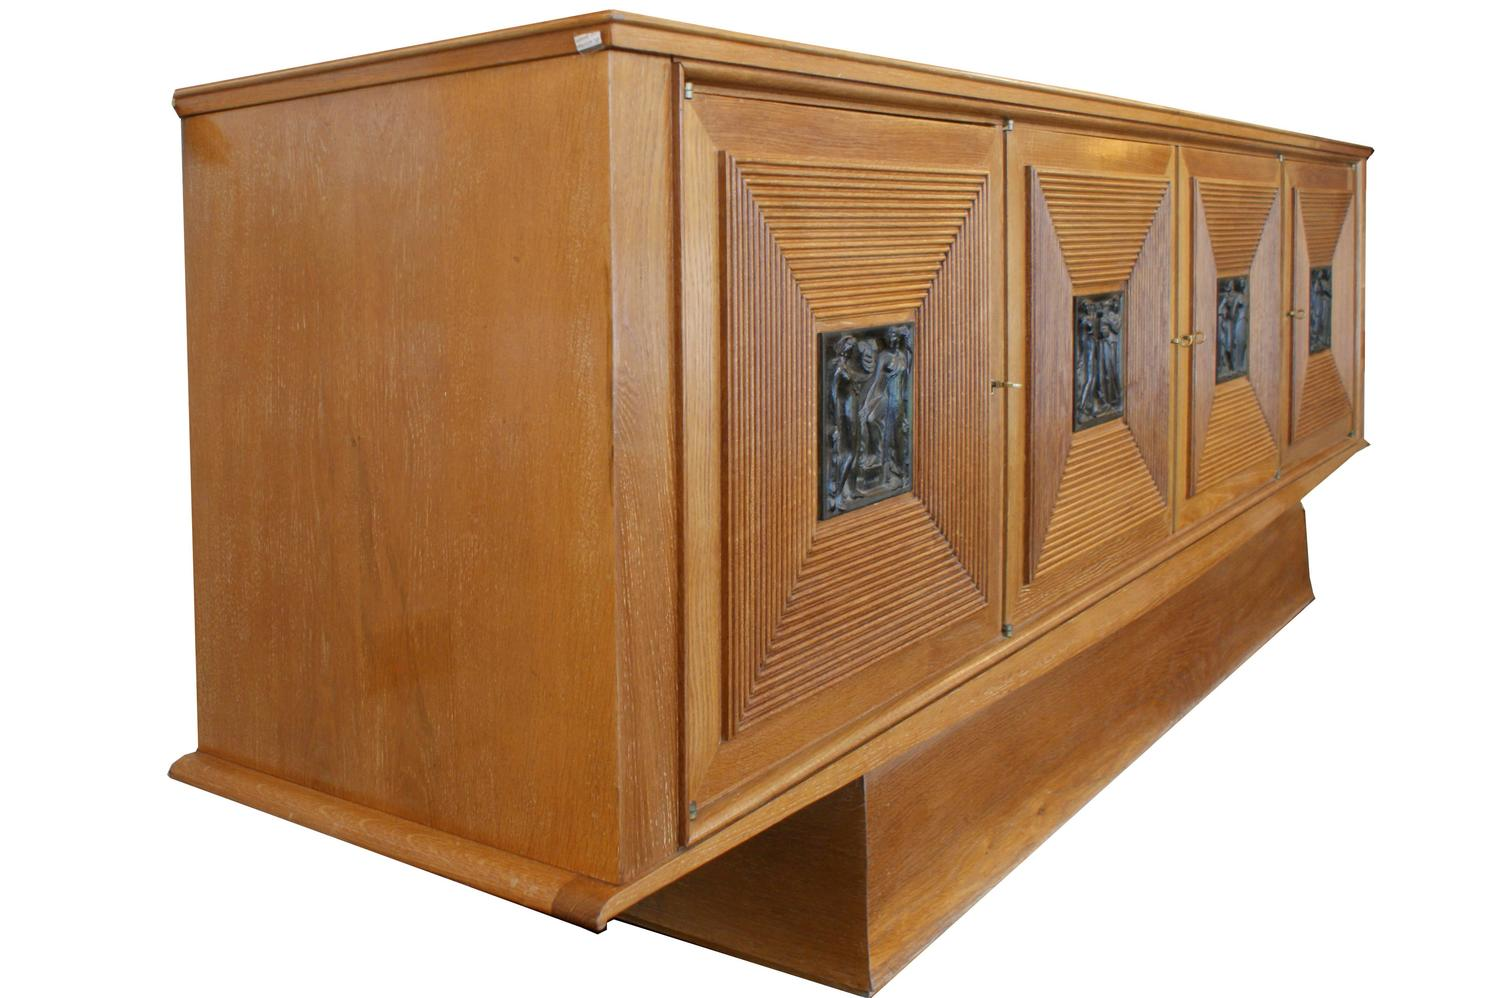 Oak and bronze cabinet by maxime old 1940 for sale at 1stdibs for 1940s kitchen cabinets for sale